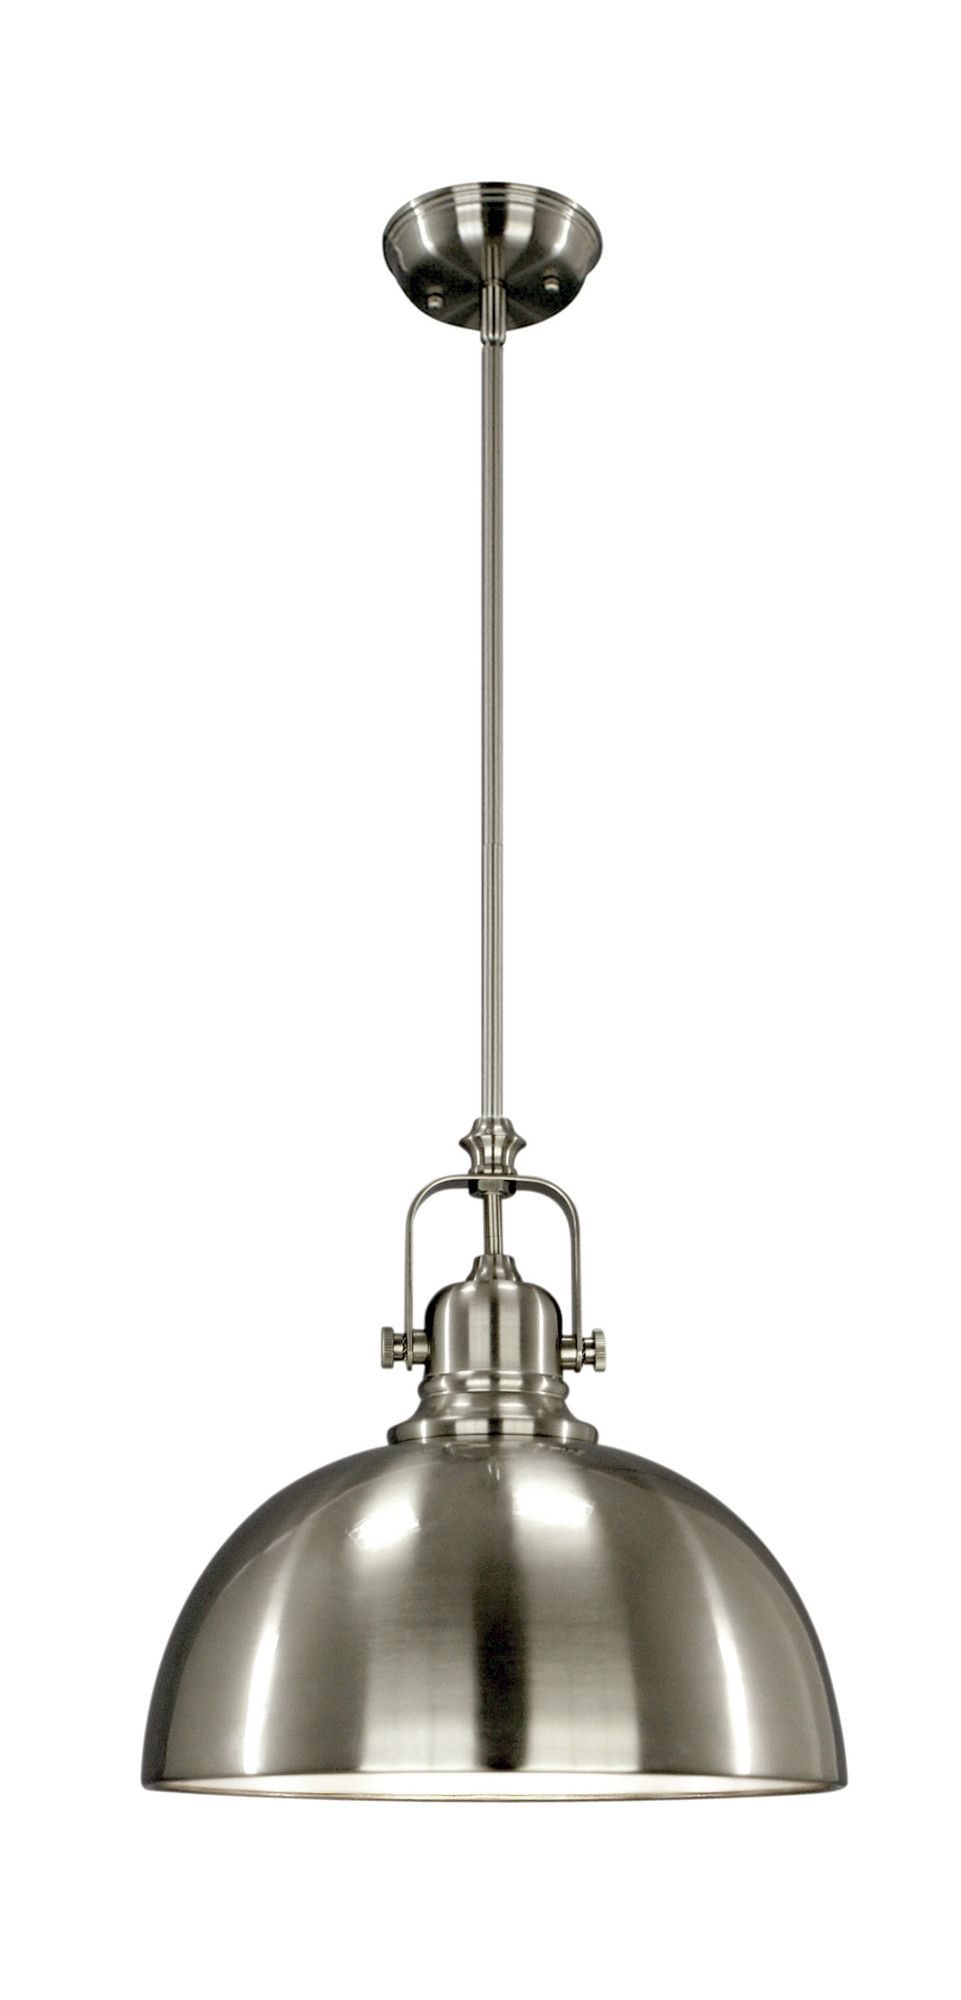 Industrial pendant light fixture in brushed nickel or